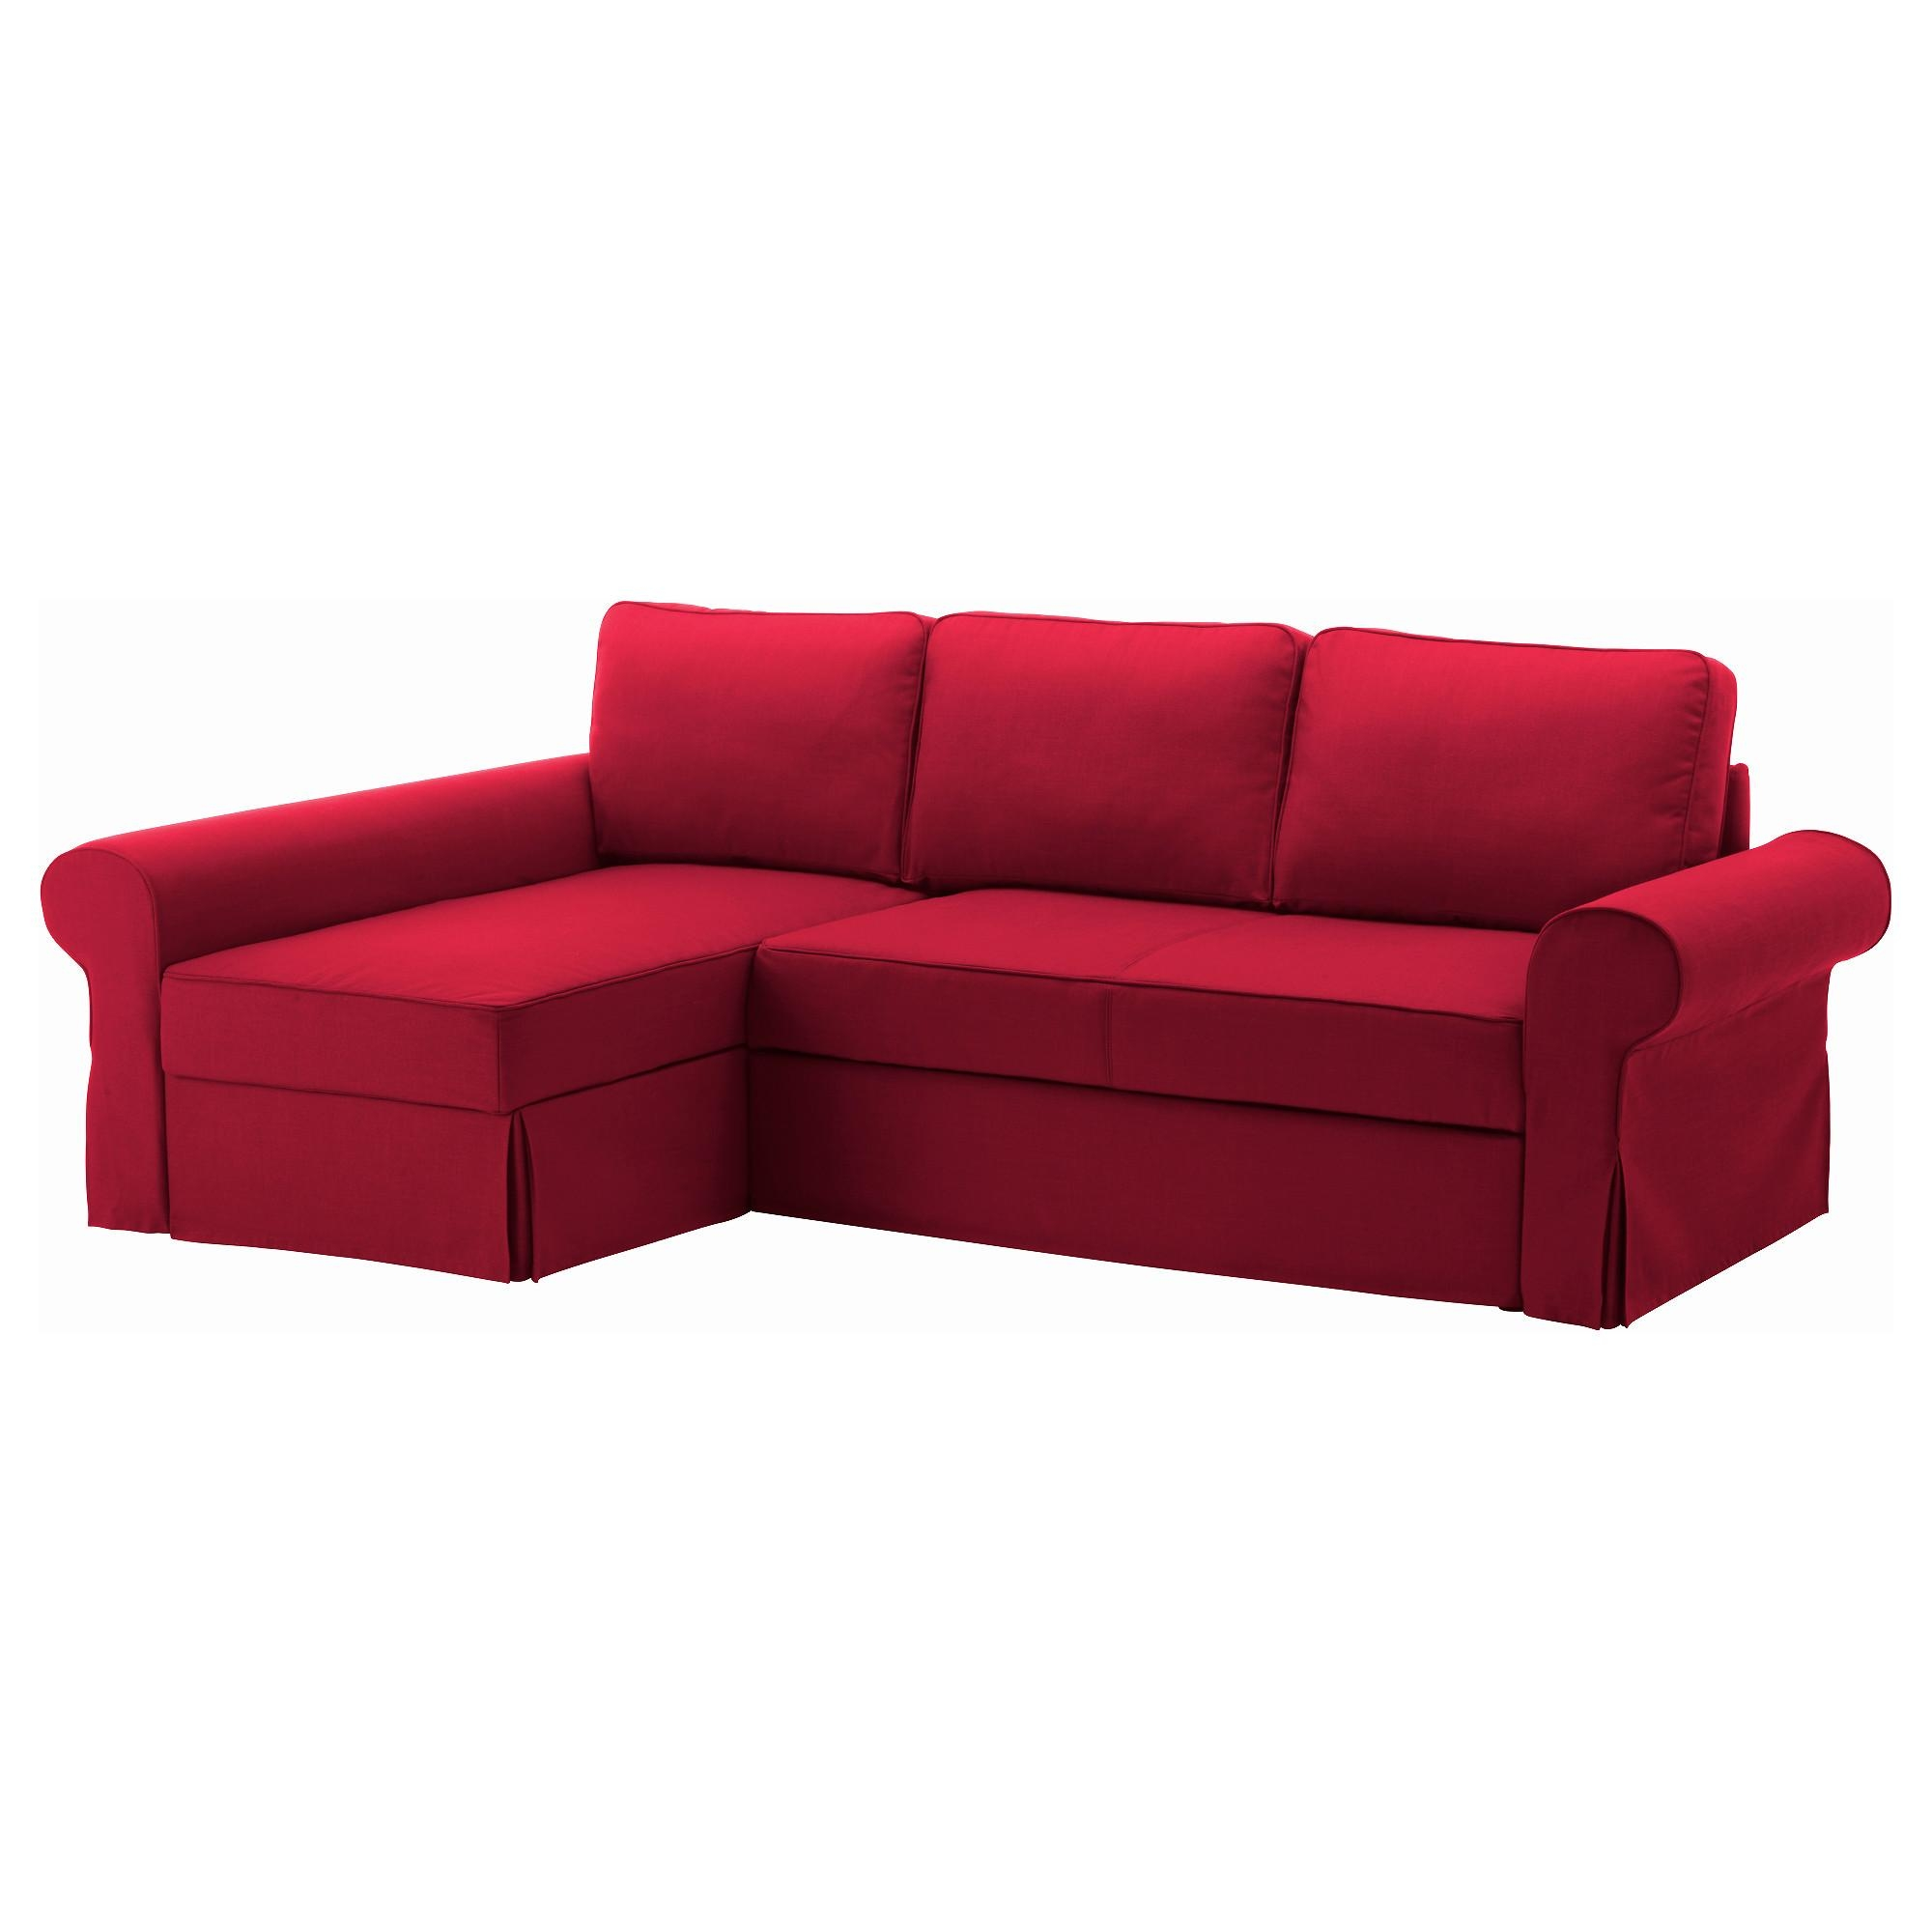 Sofa Beds & Futons | Ikea Throughout Red Sofa Beds Ikea (Image 19 of 20)